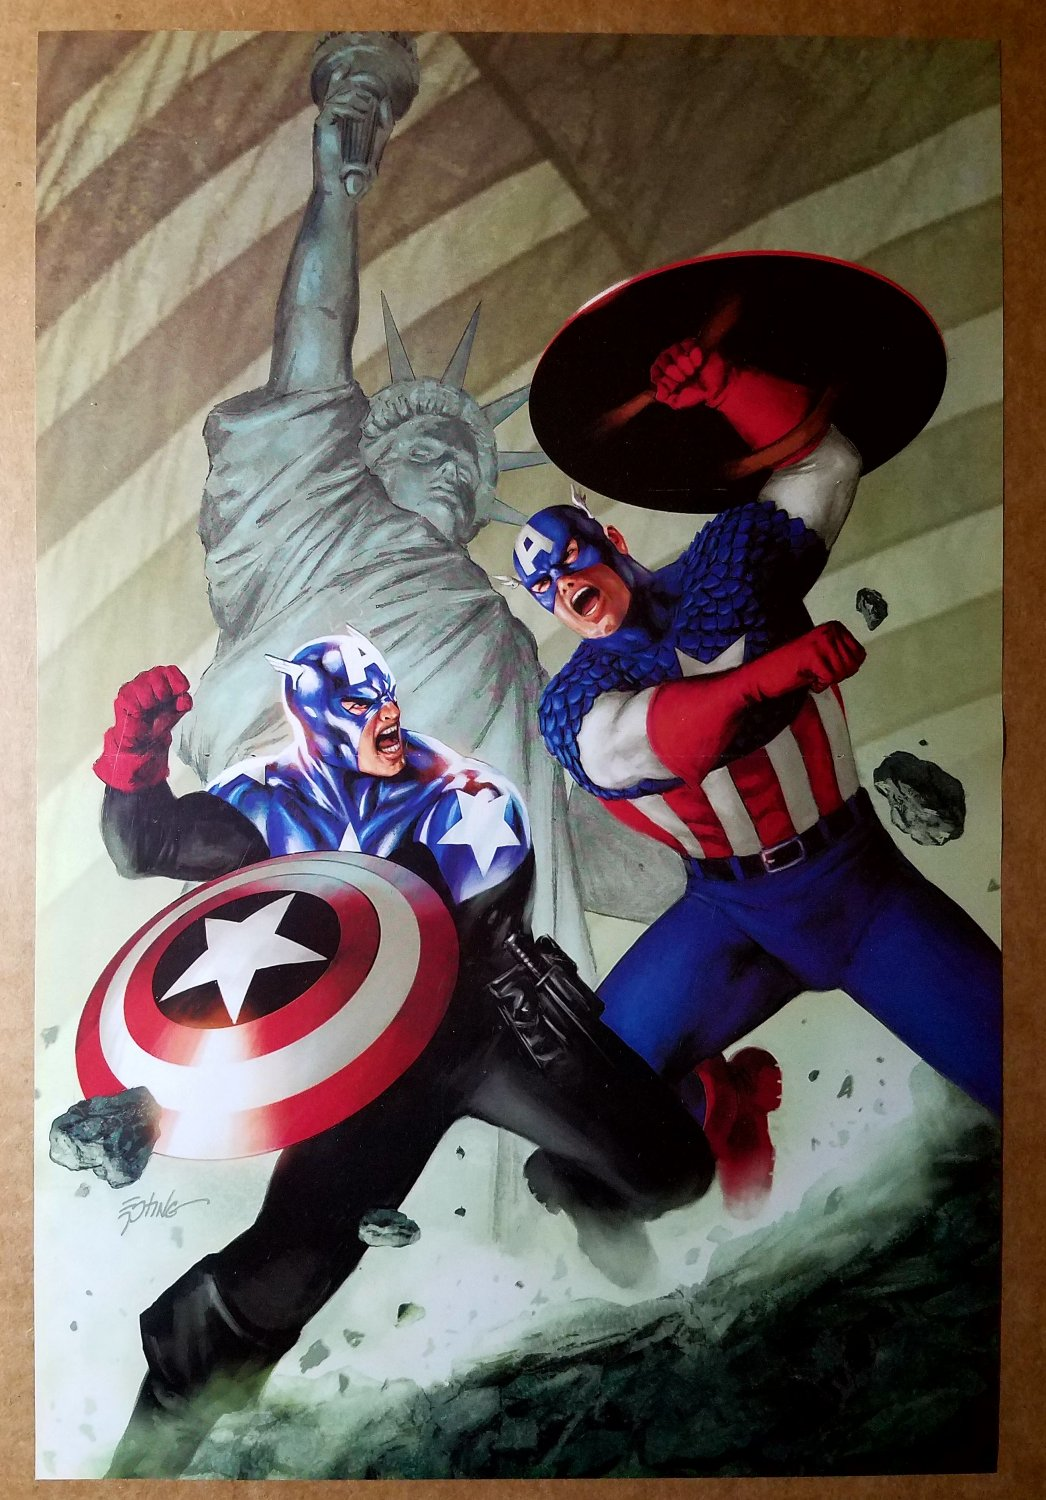 Captain America Bucky Statue of Liberty Flag Marvel Comic Poster by Steve Epting